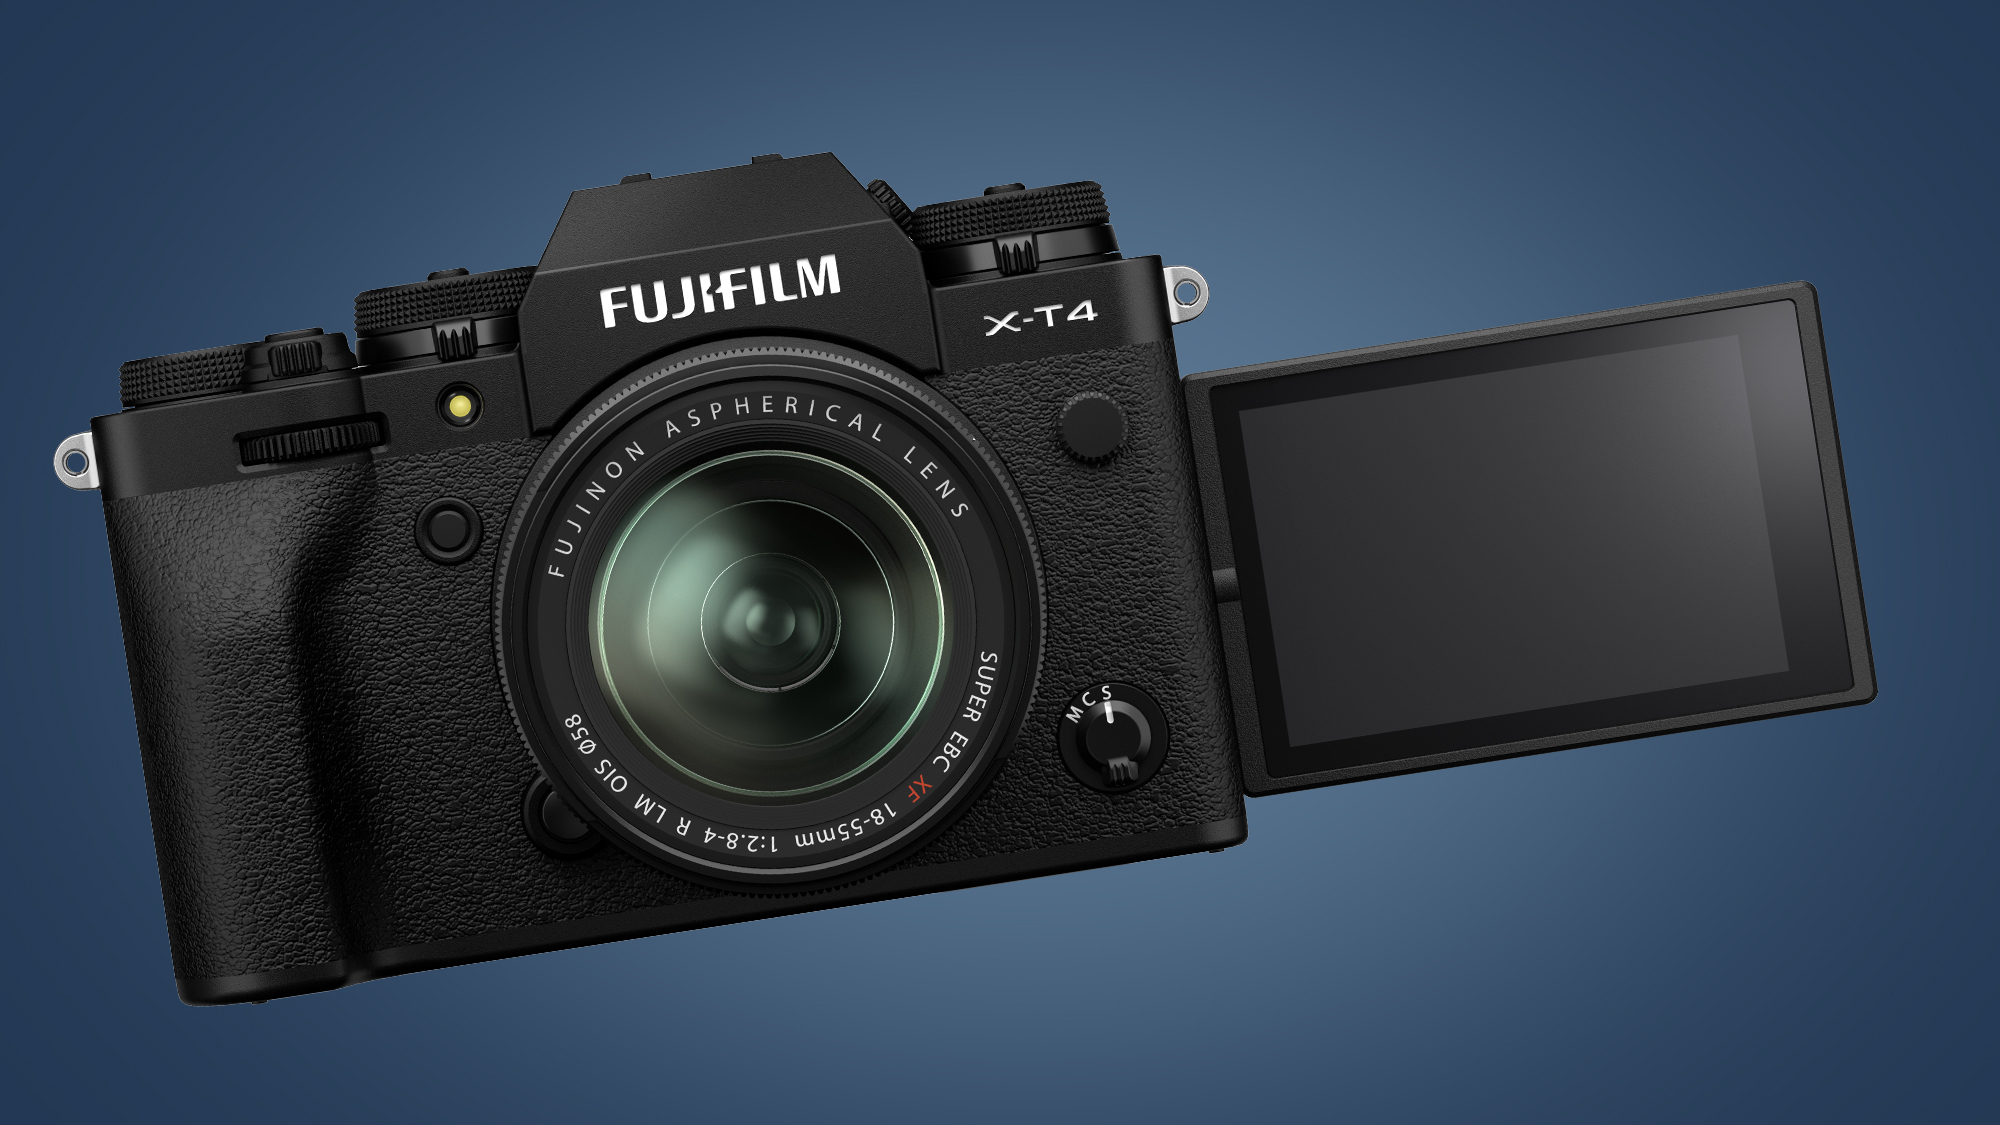 Fujifilm X-T4 shipping could be delayed, according to Fujifilm Russia